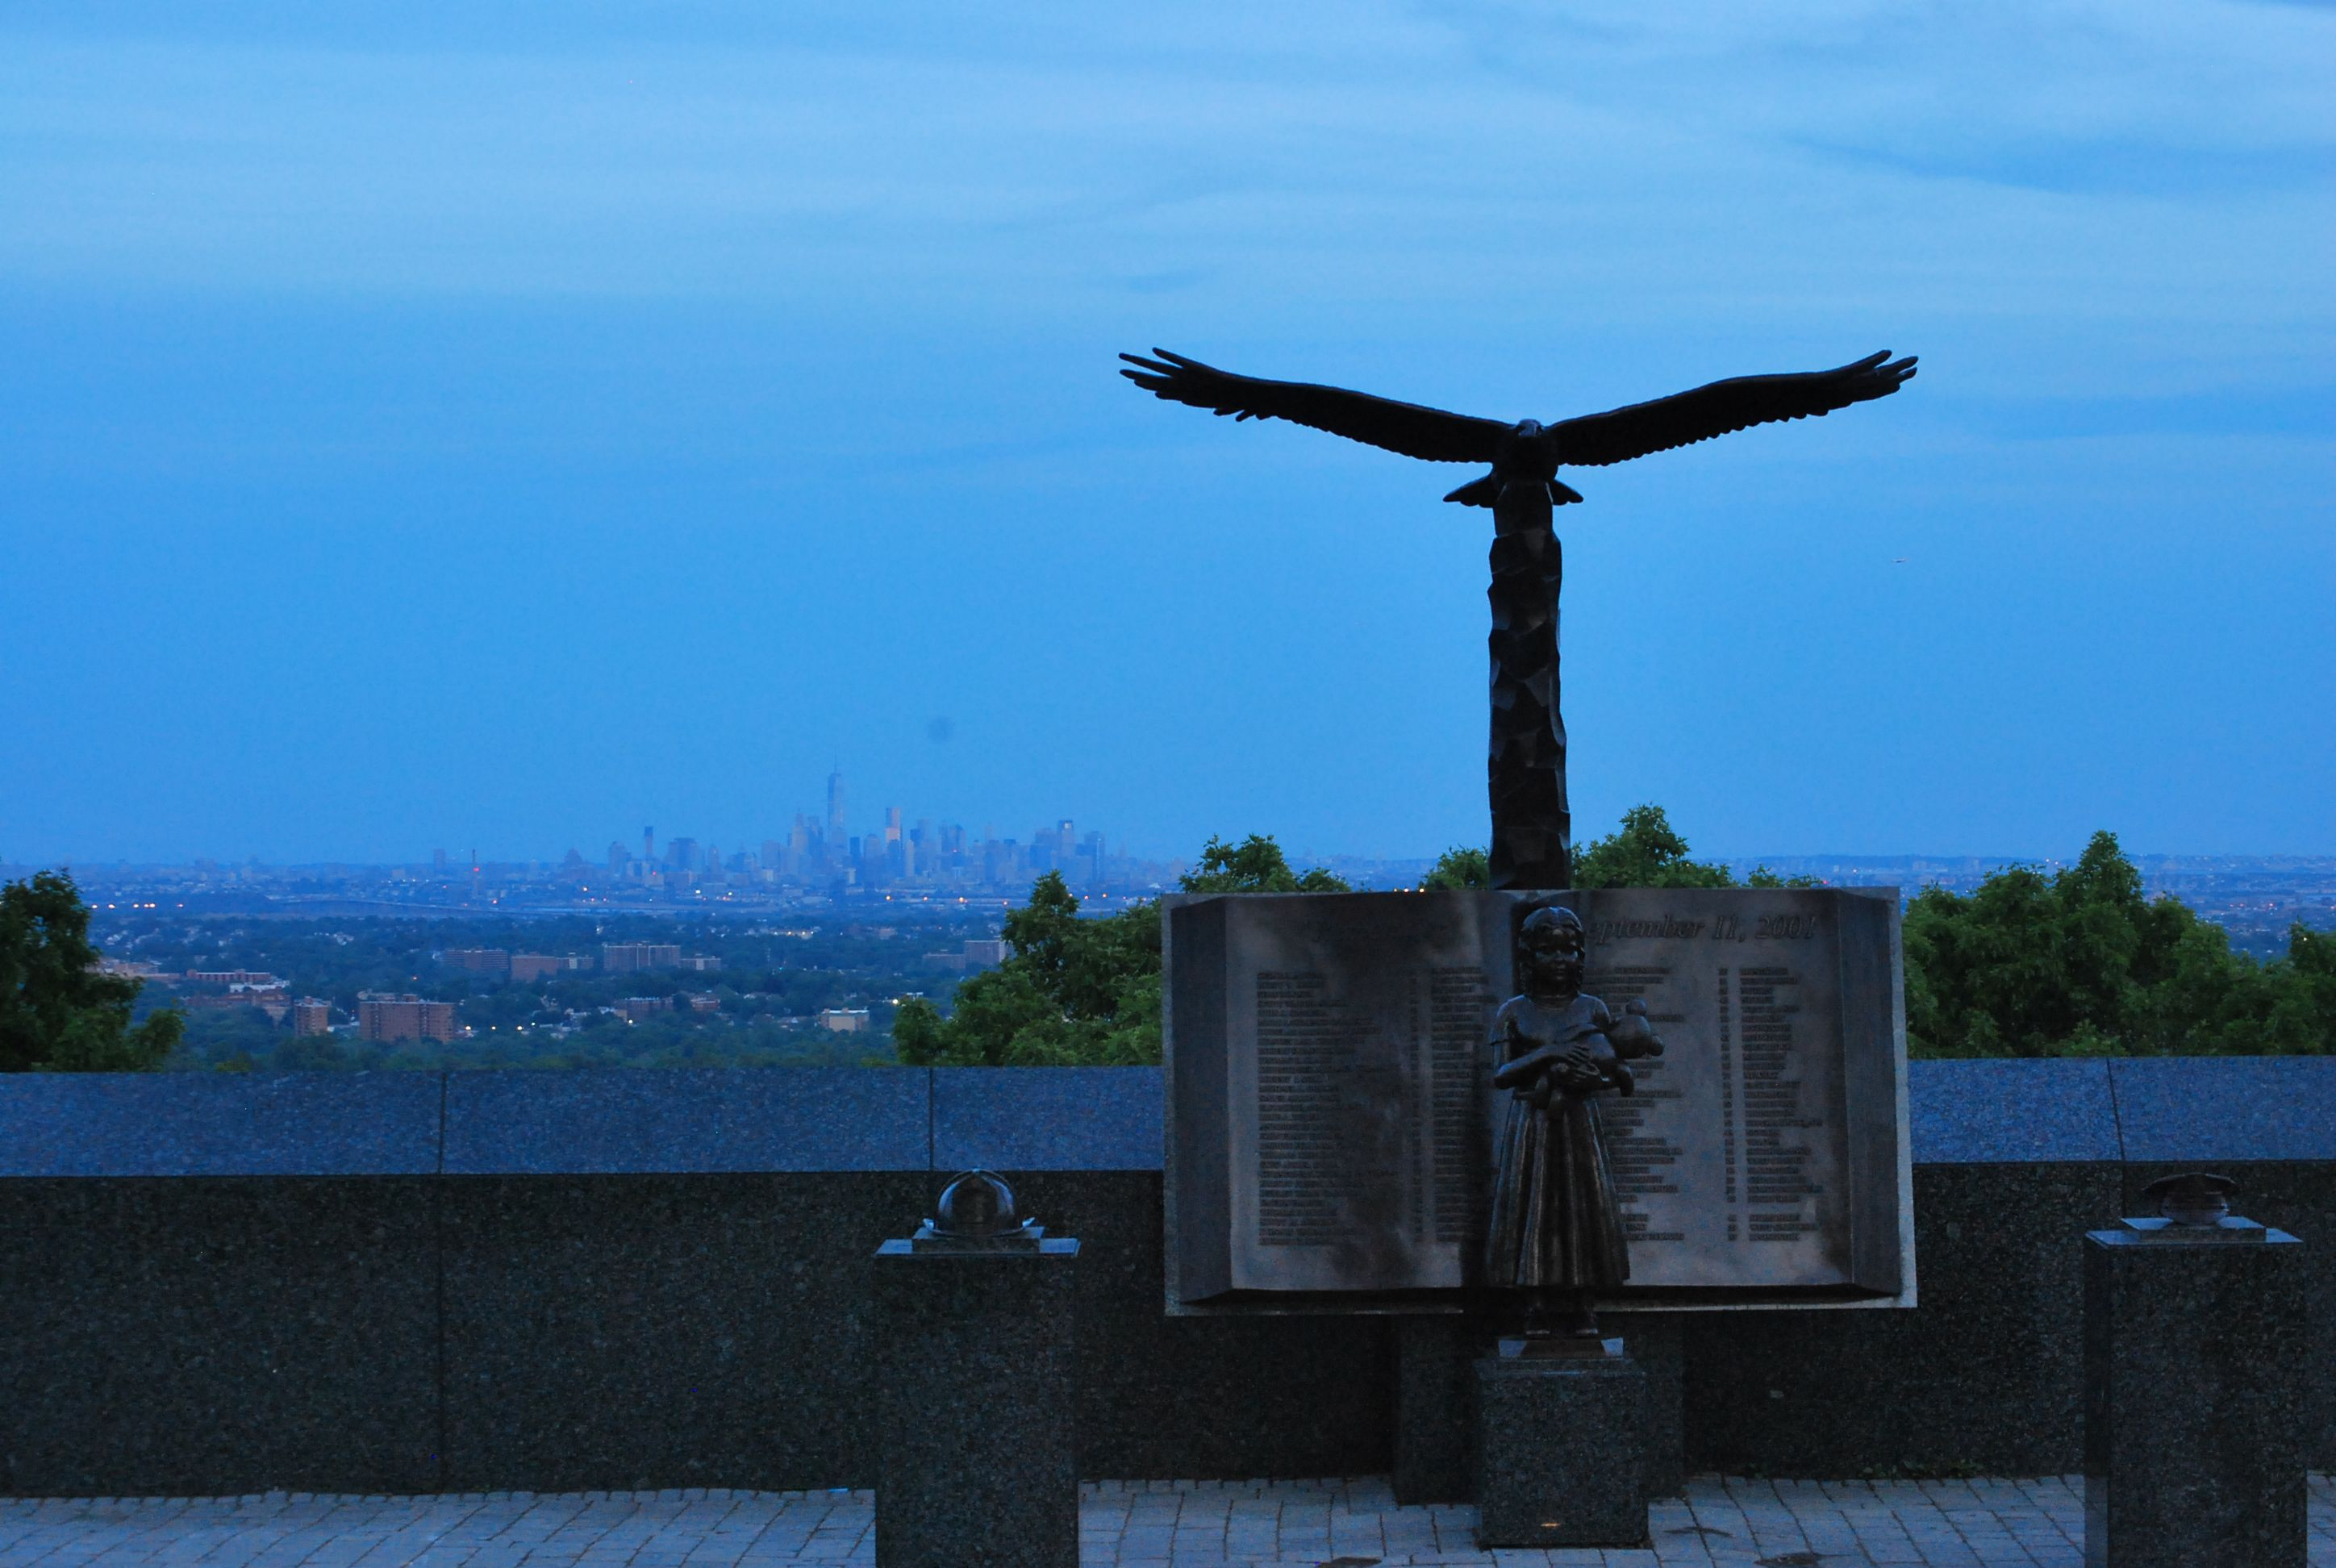 911 Memorial in New Jersey at Highland Pavilion in Eagle Rock Reservation near Montclair NJ. Check my blog at Chrisknowsbest.com for full article